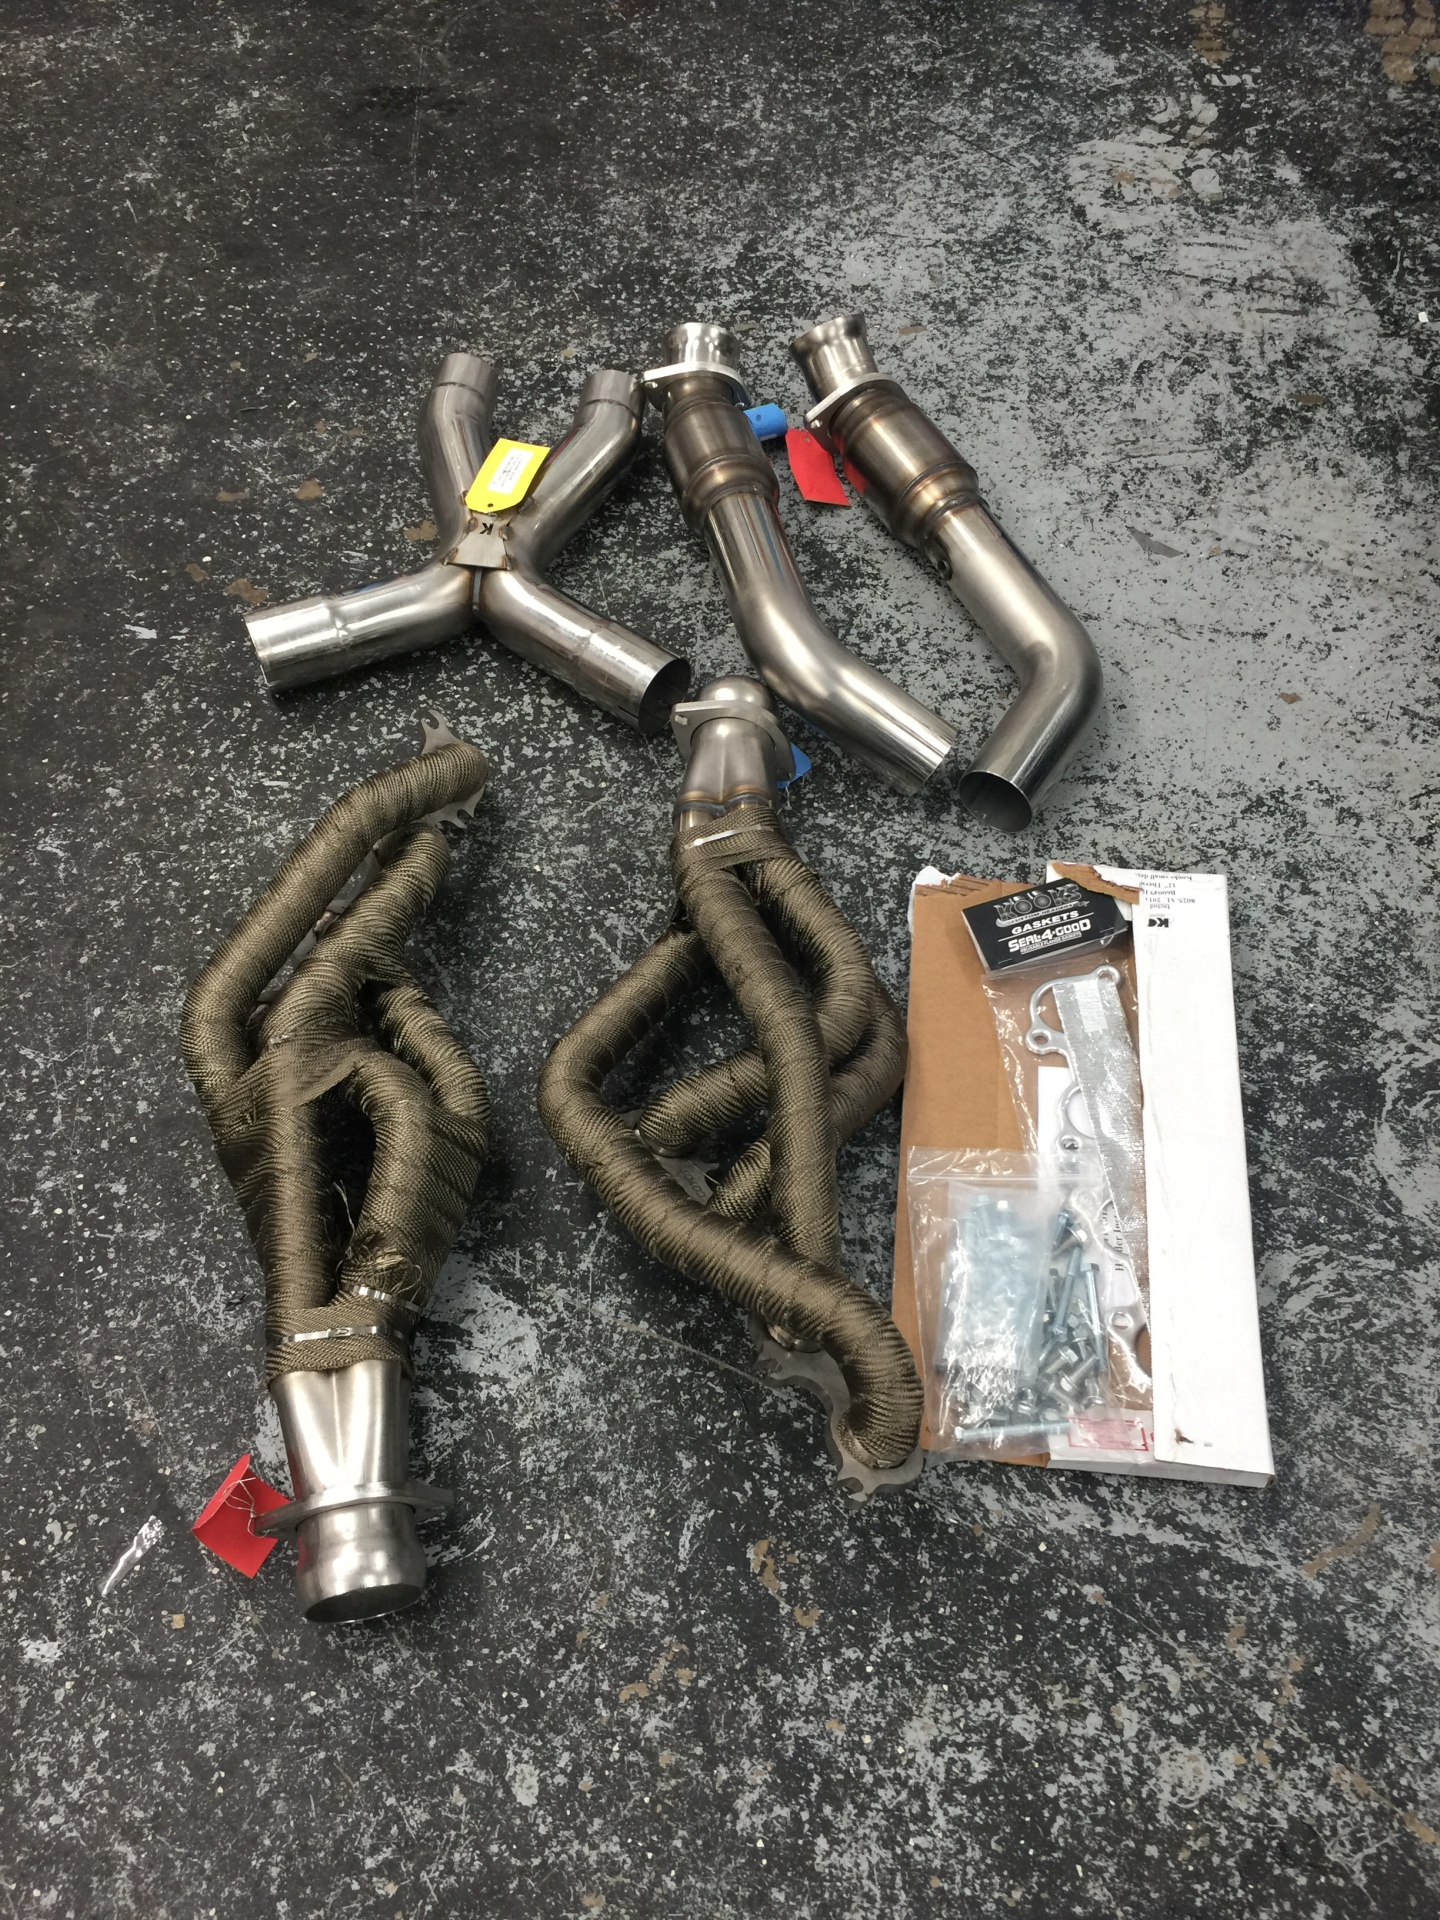 Kooks LongTube headers for a 5.0 mustang.